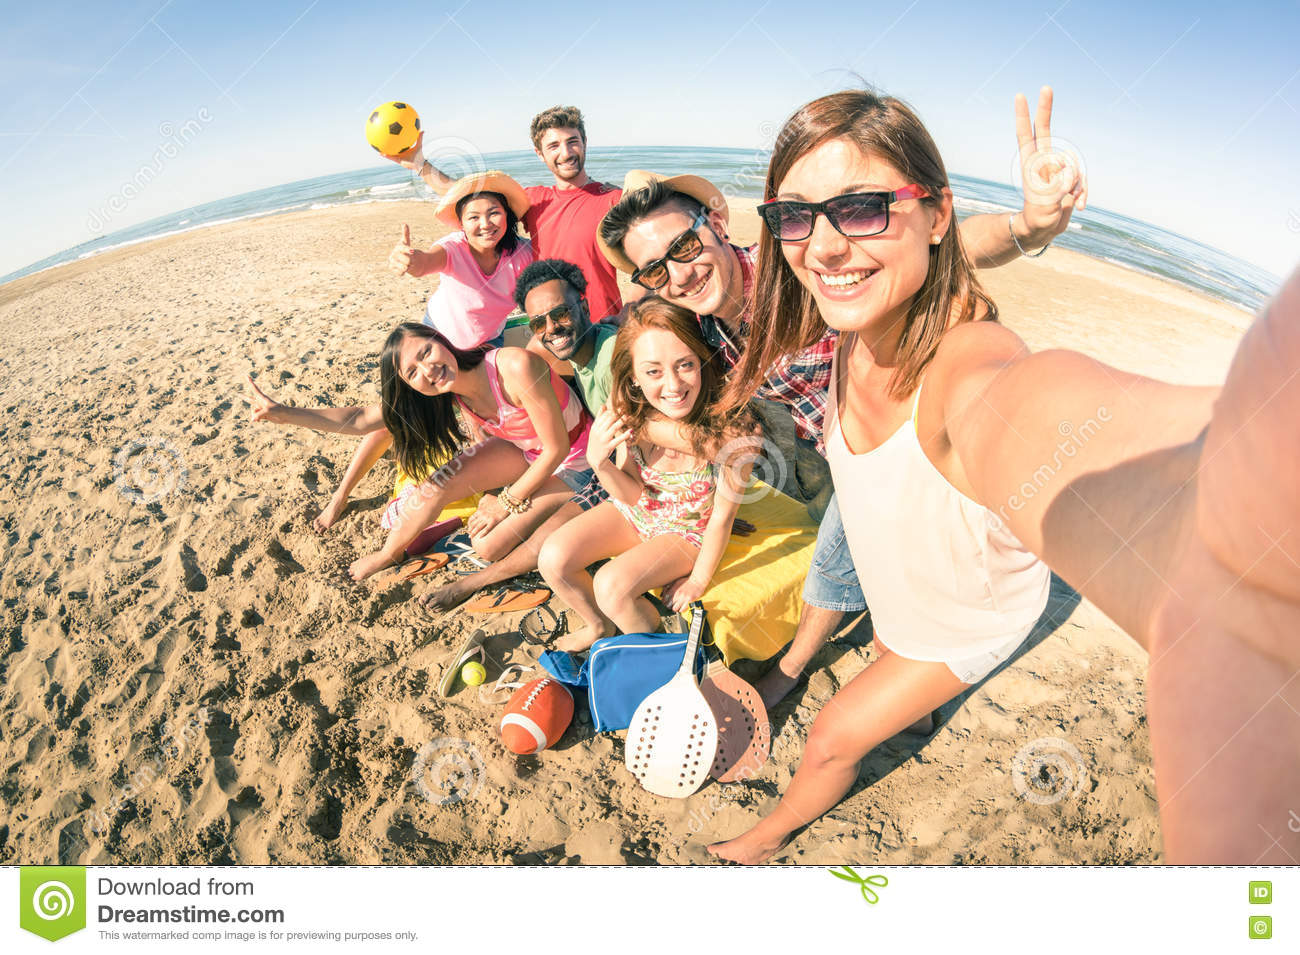 Group of multiracial happy friends taking fun selfie at beach